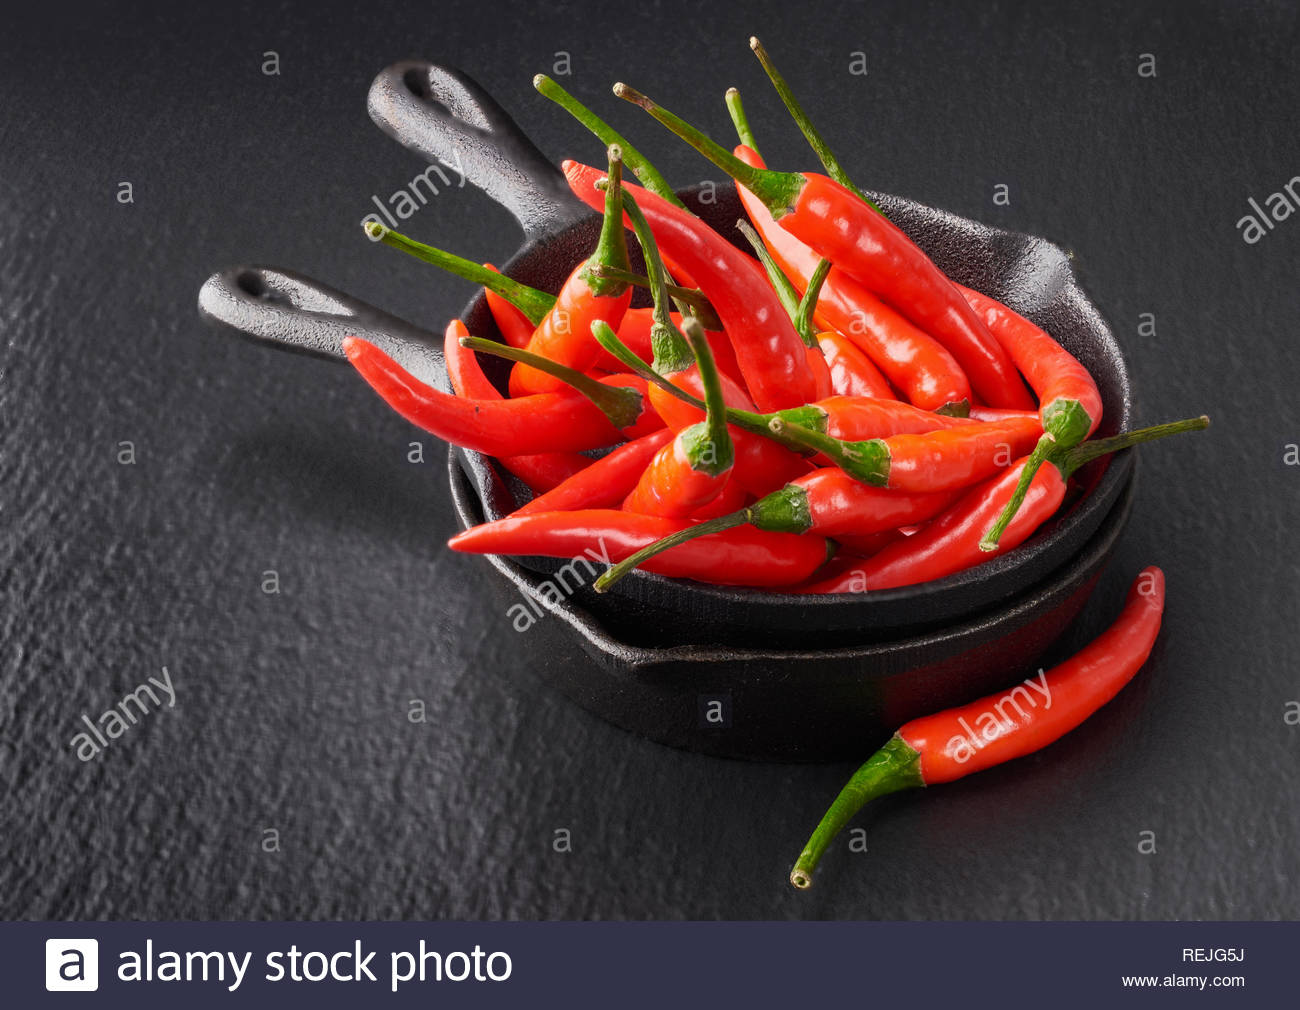 closeup-on-red-hot-chili-peppers-in-a-stack-of-two-grey-ceramic-bowls-on-black-slate-stone-background-REJG5J